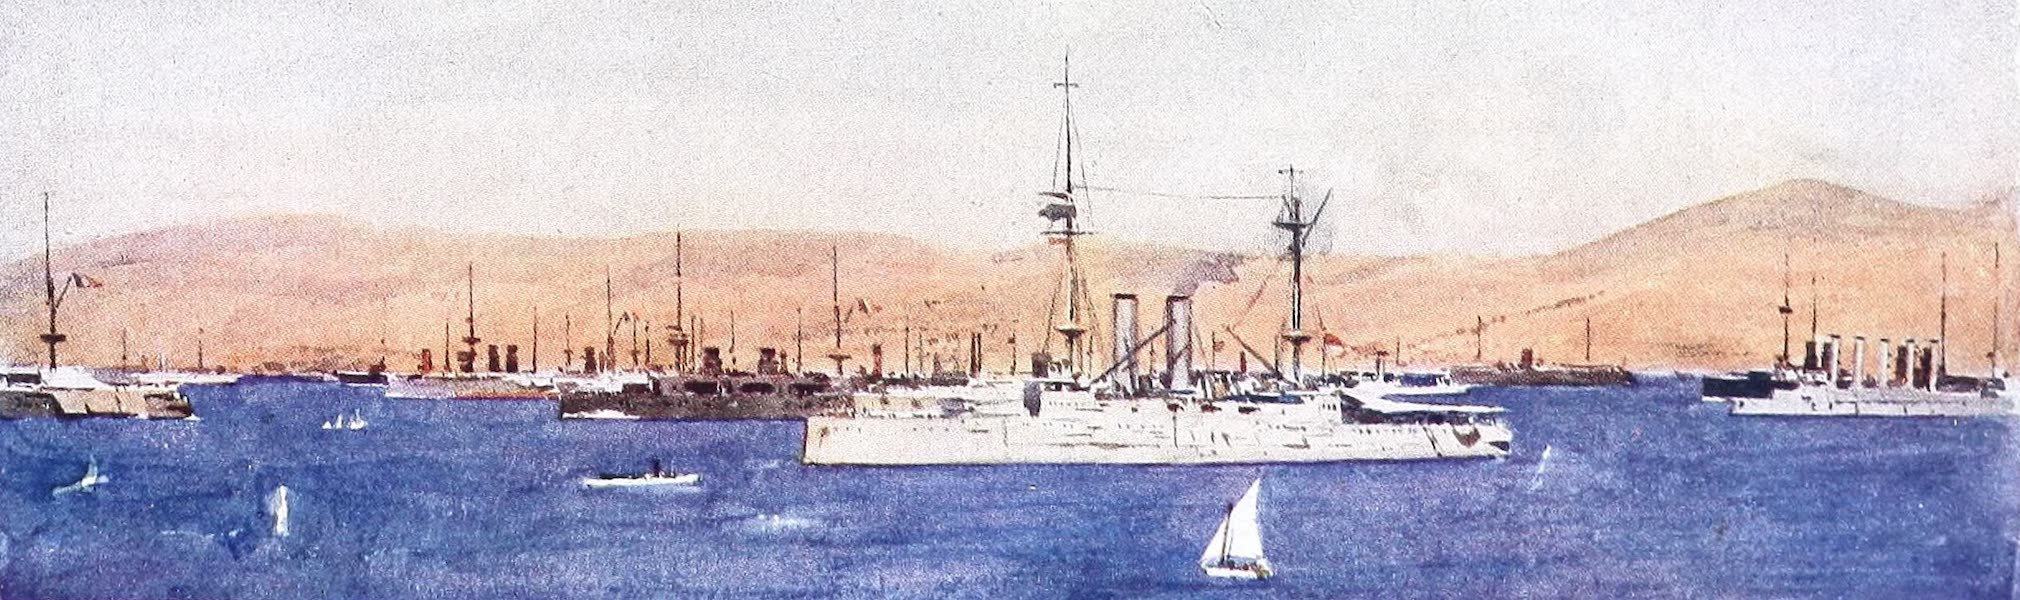 The Dardanelles : Colour Sketches from Gallipoli - Mudros Harbour (1915)